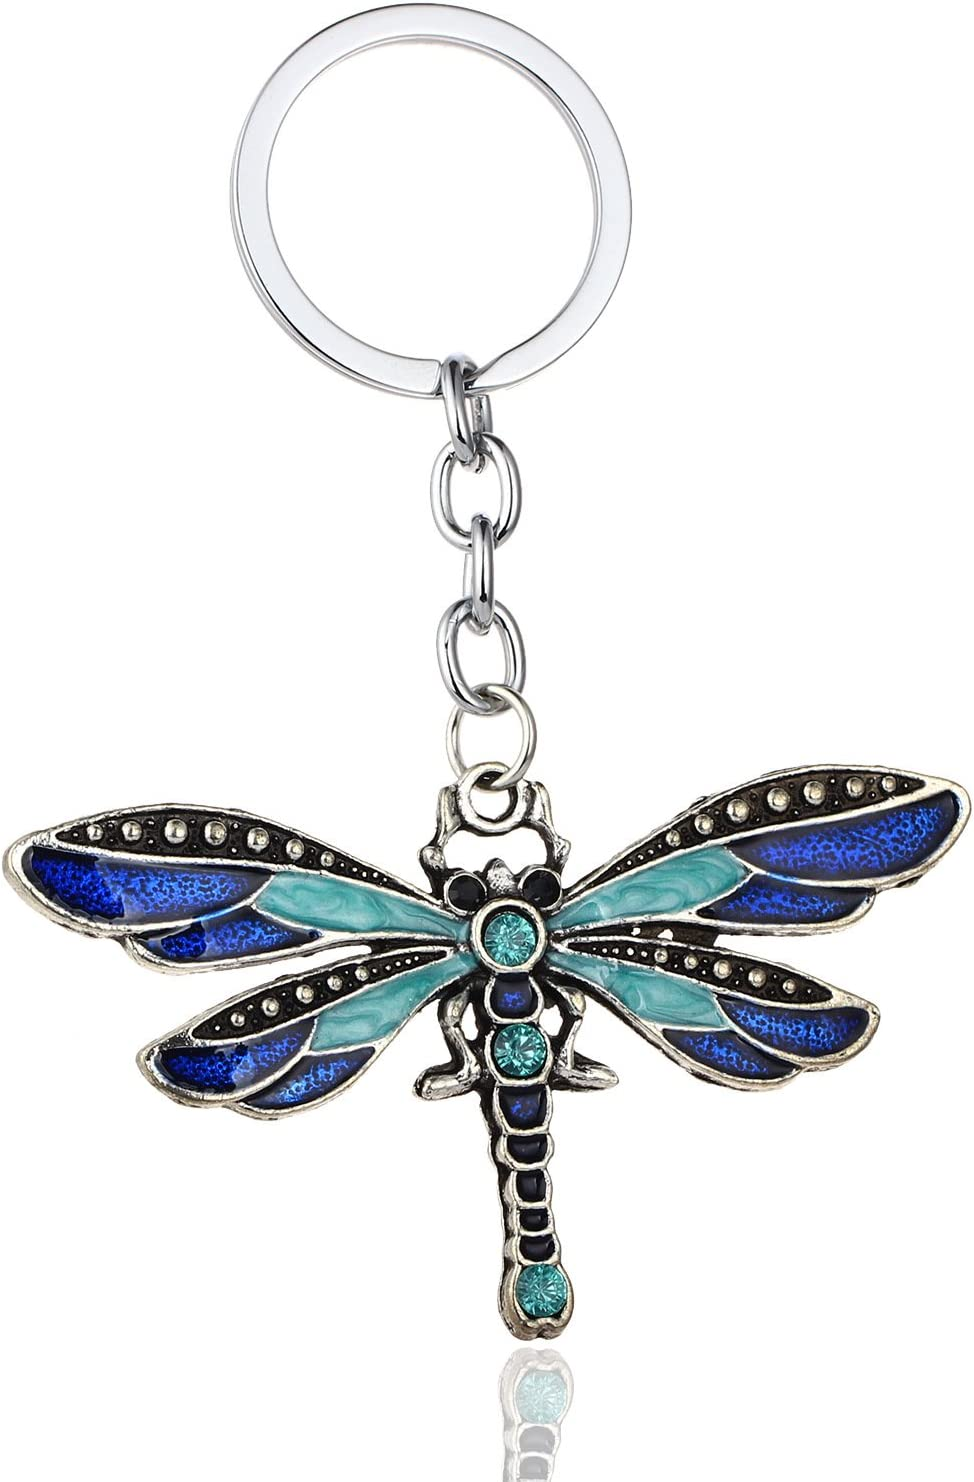 Tvoip Dragonfly Keychain Fashion Jewellery Silver Keychain Dragonfly Charm Keychain Handmade Keychain Gift for Women Handmade Jewellery Keychain (Blue)